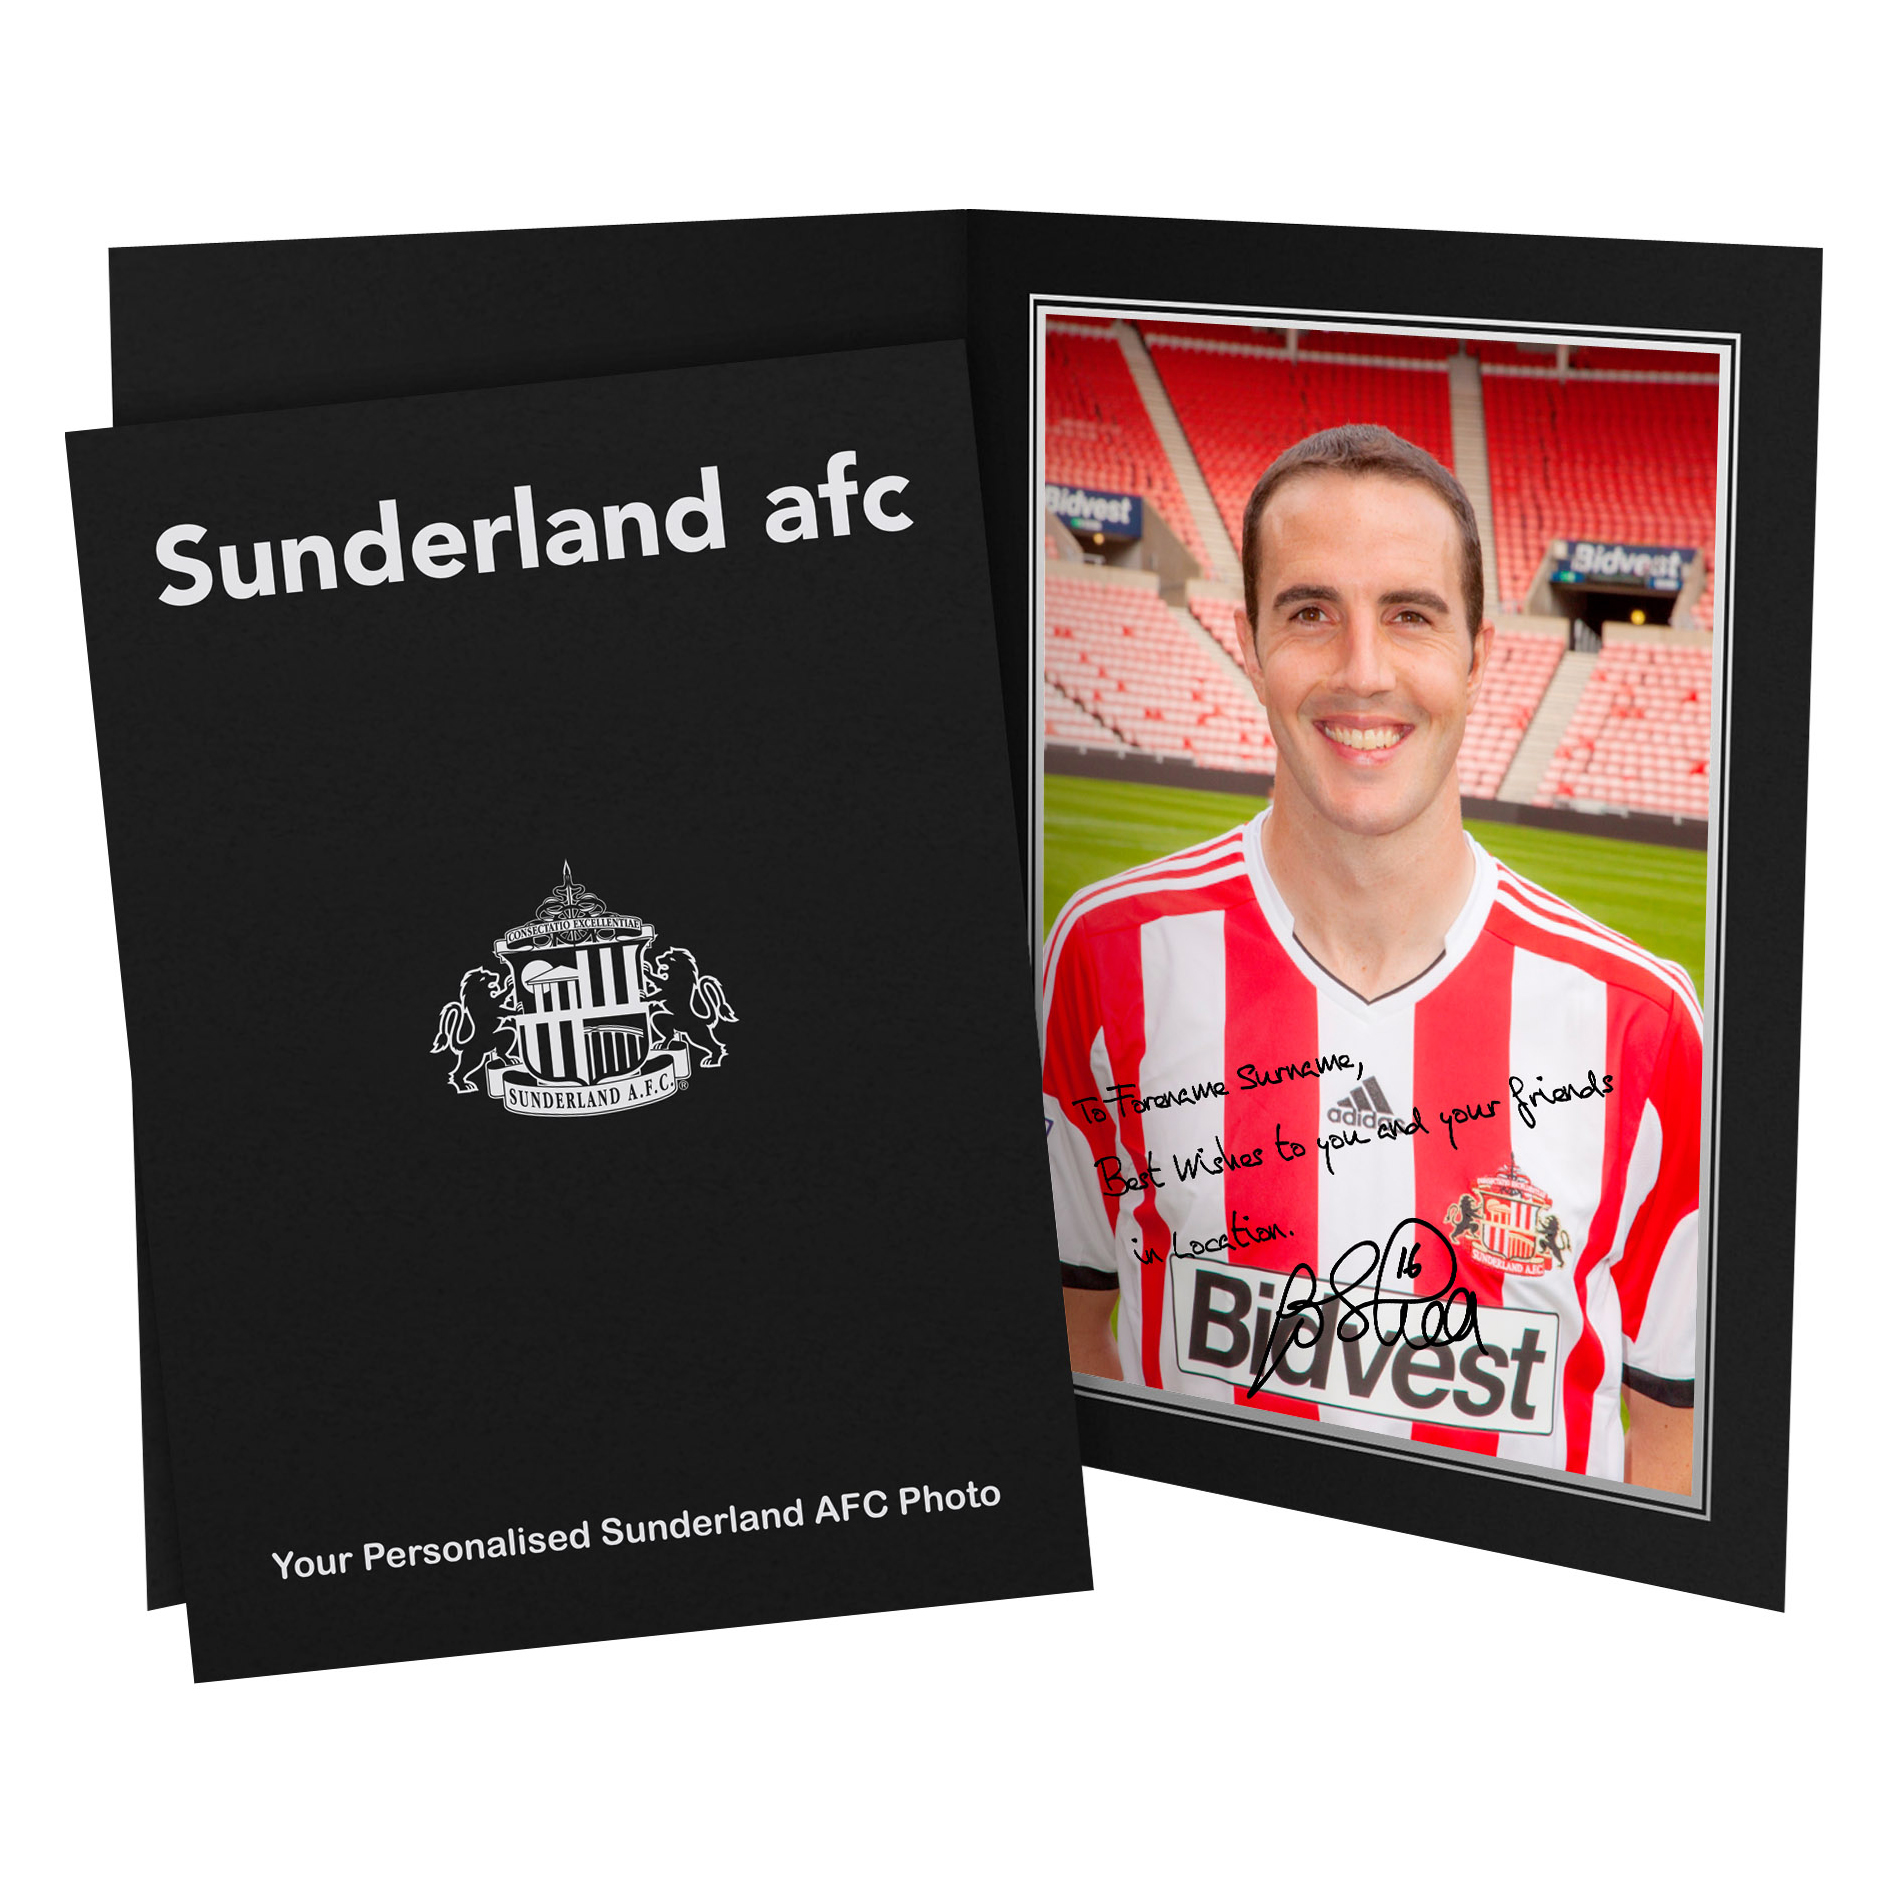 Sunderland Personalised Signature Photo in Presentation Folder - O Shea